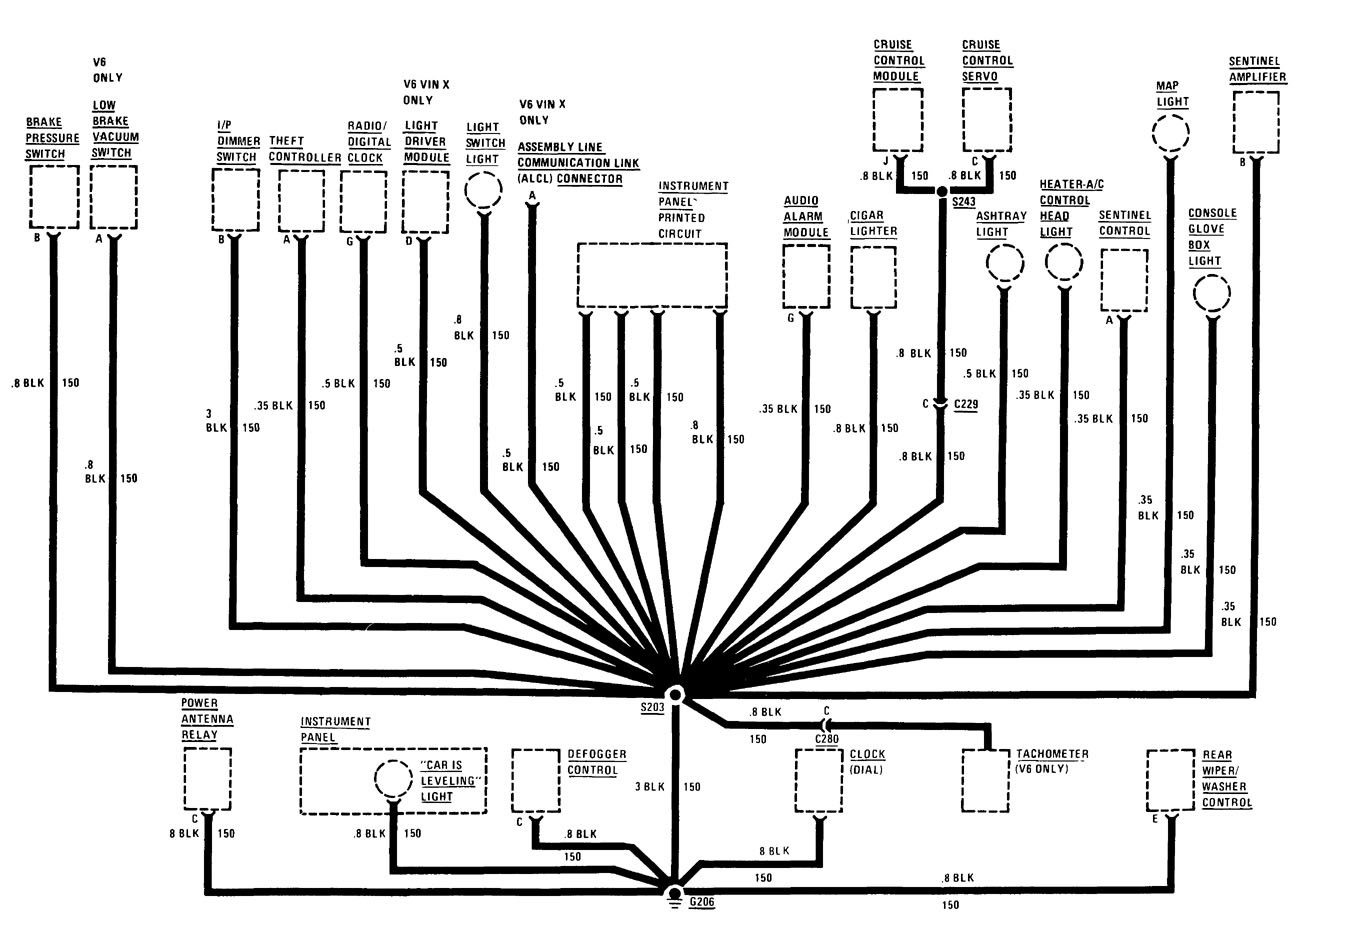 Buick Century 1986 Wiring Diagrams Ground Distribution Lesabre Schematic Diagram